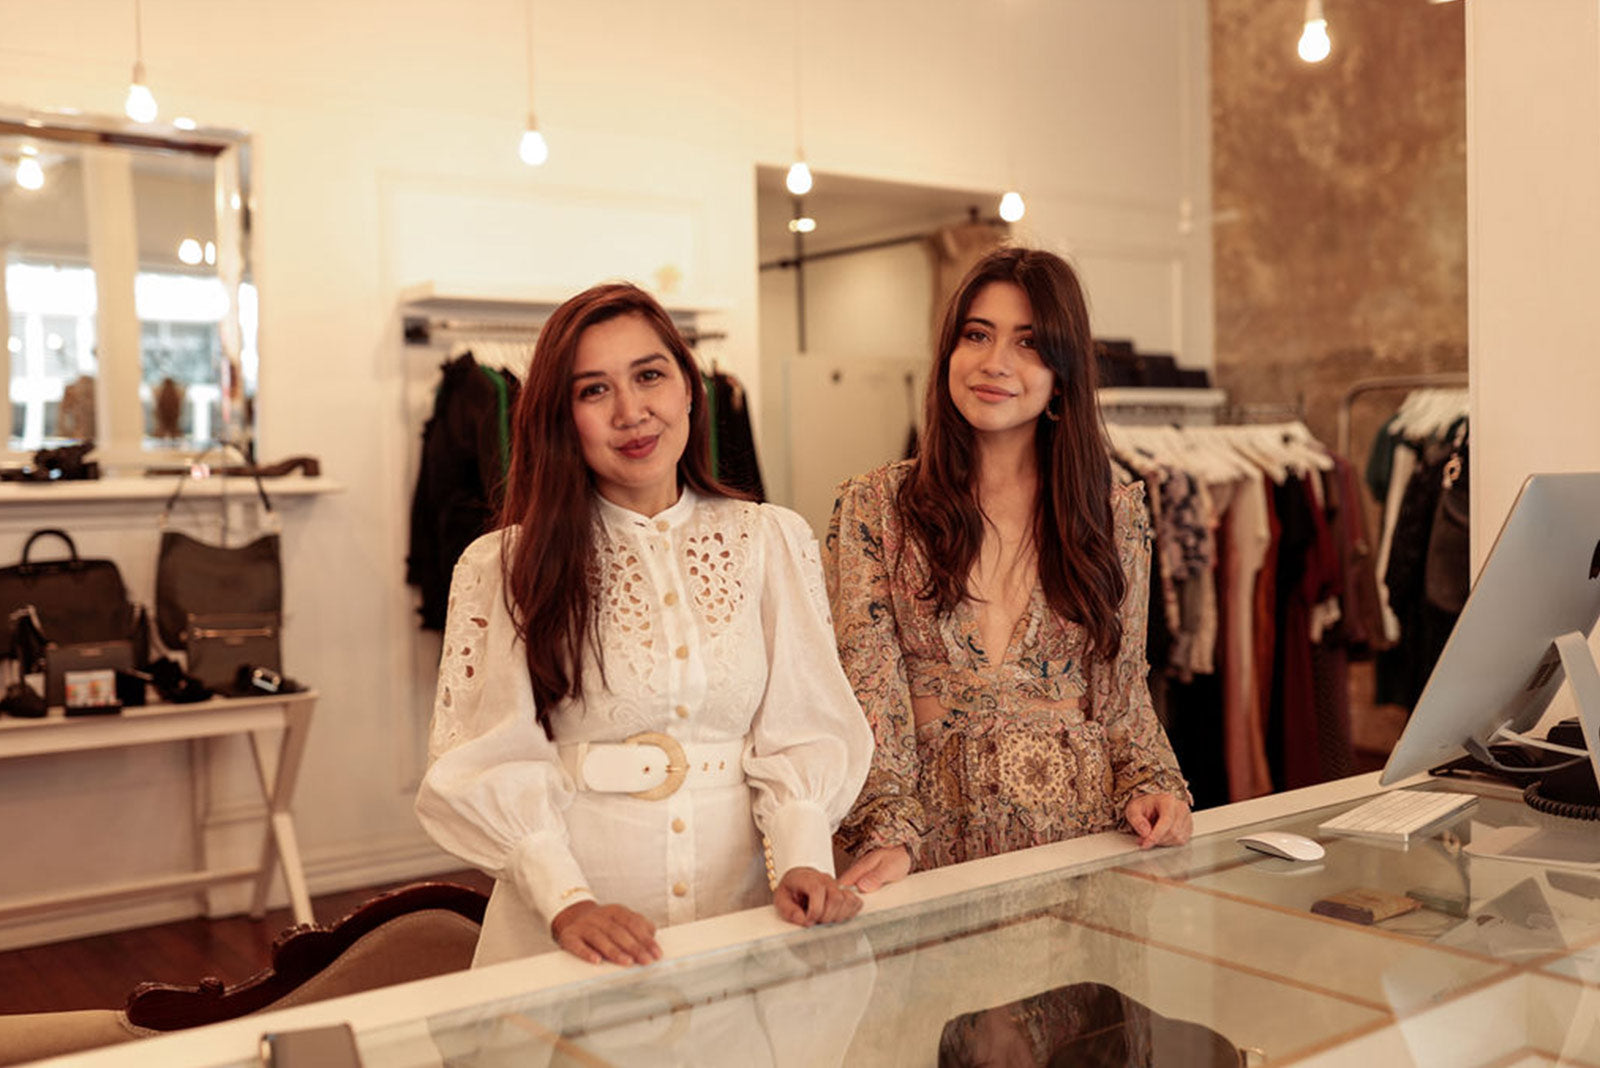 Shop Local | We talk to Sophea and Emily from Coco Wellington